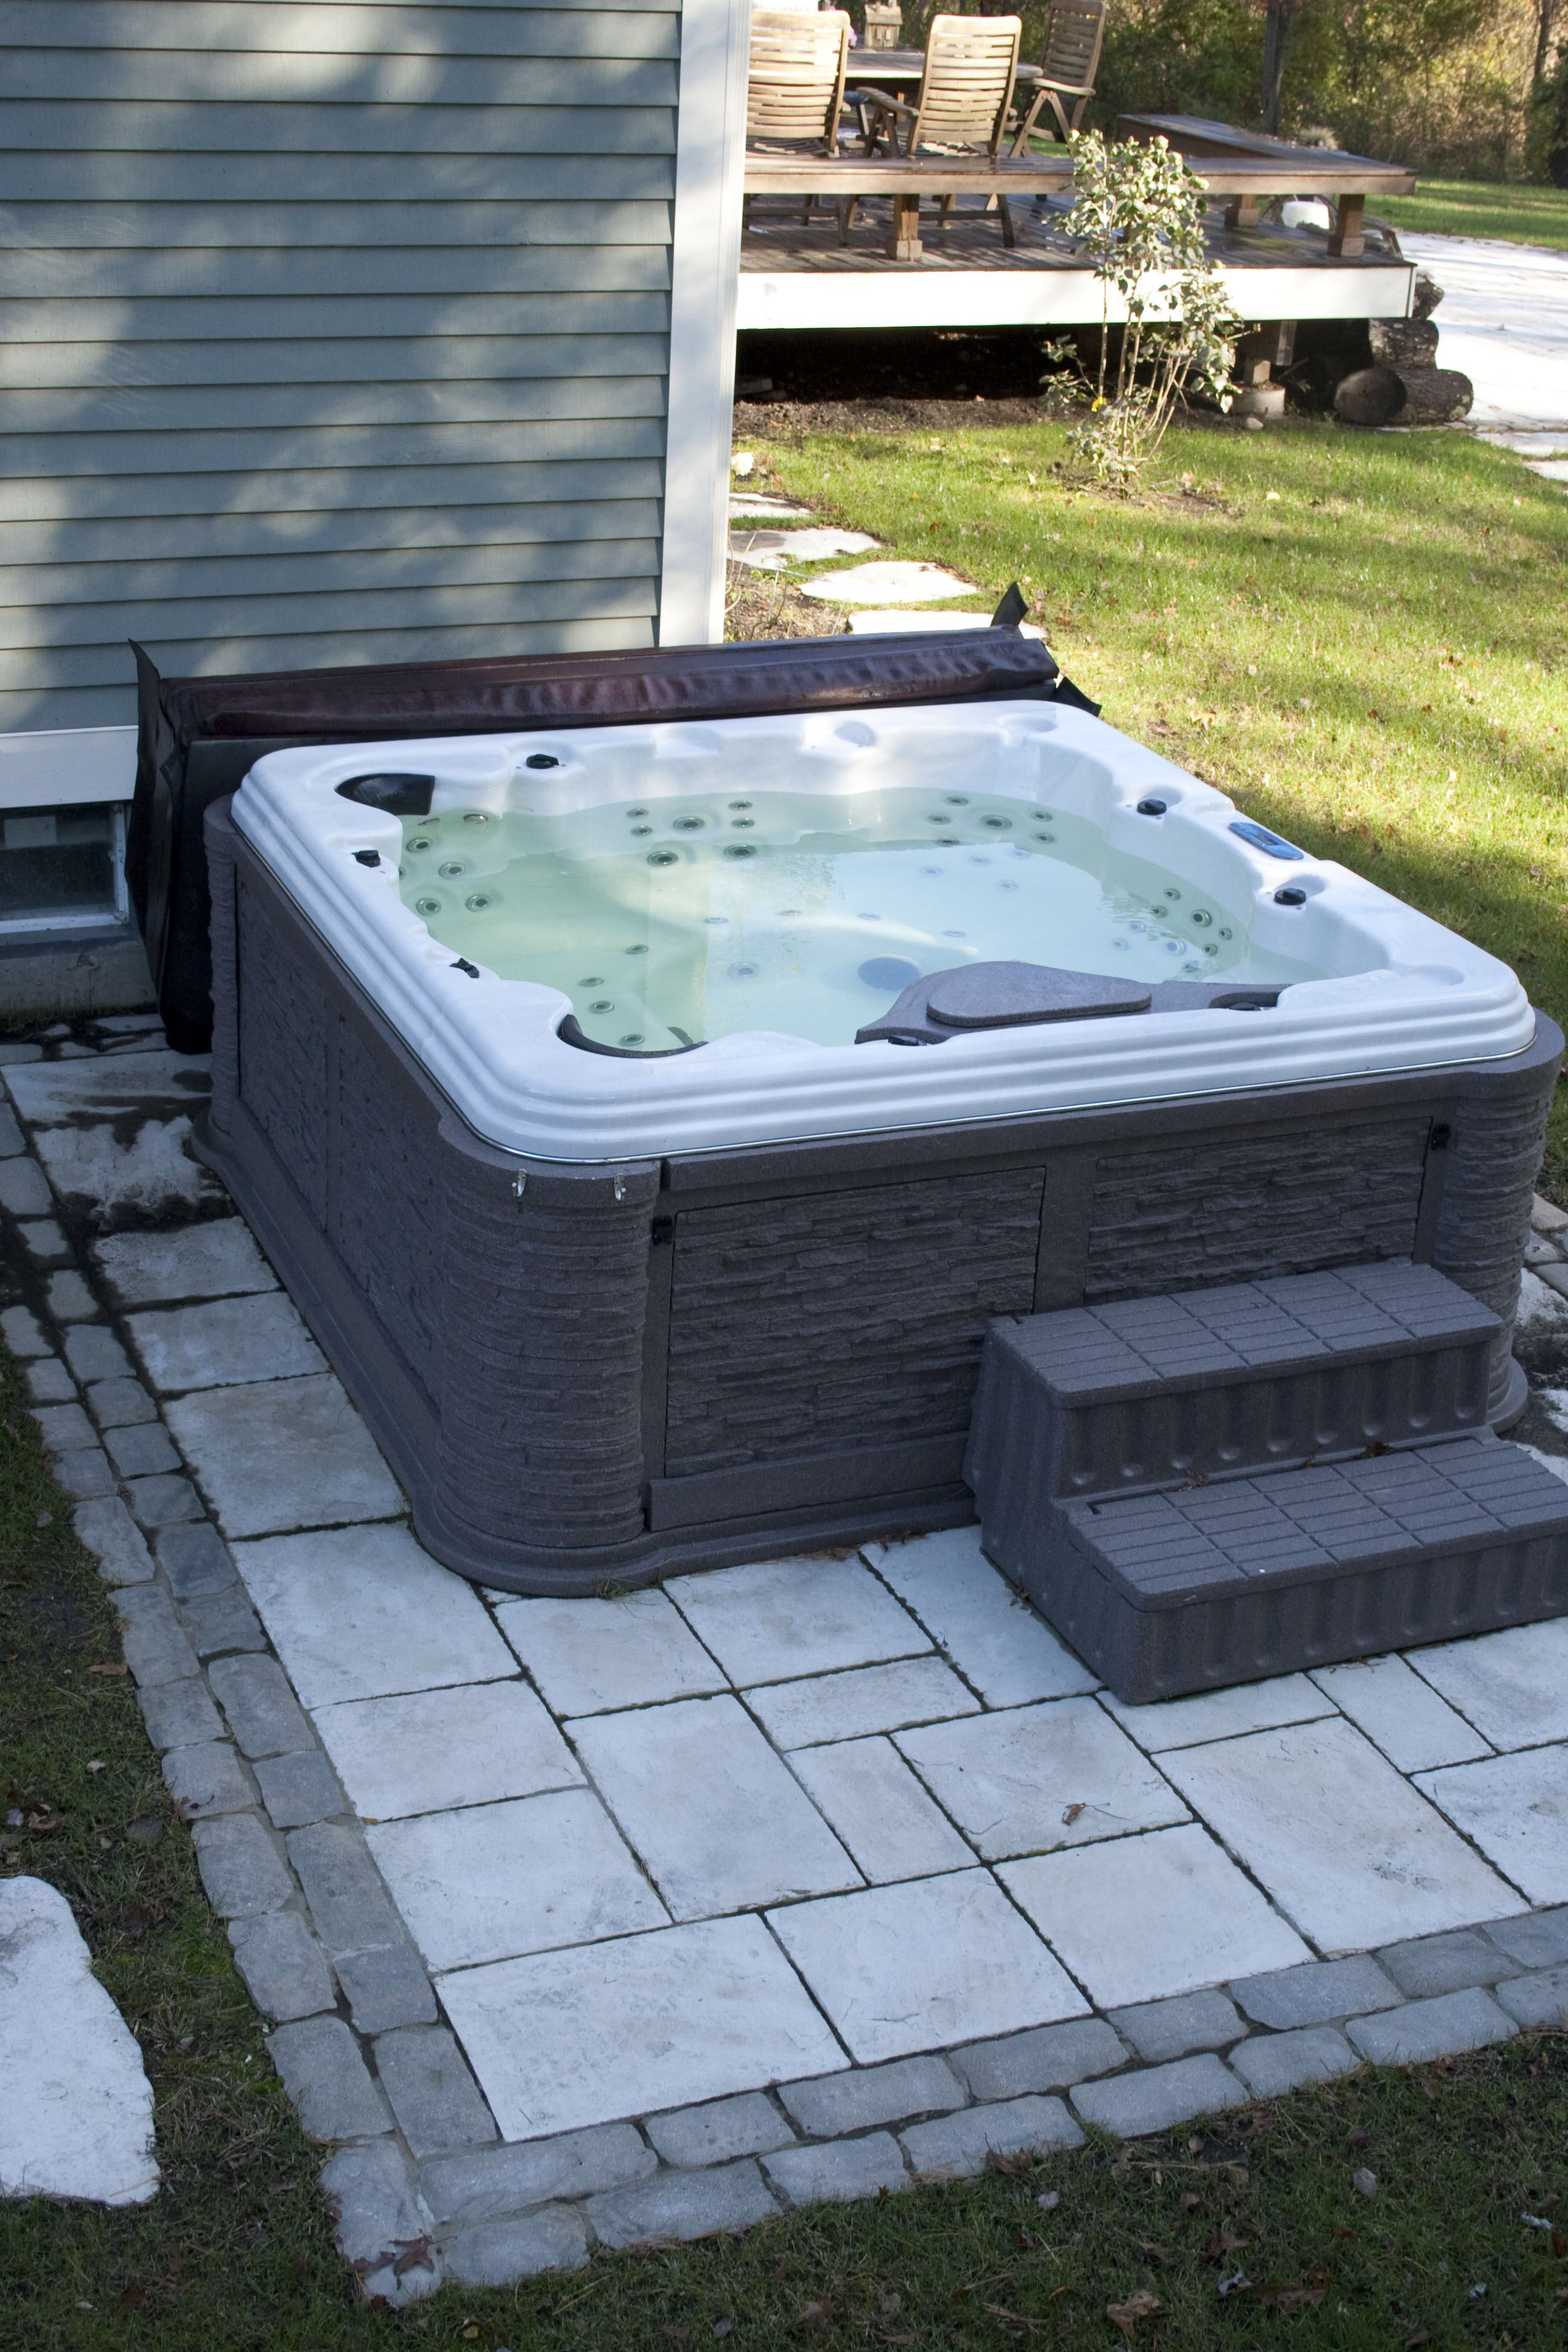 Pin by Talltower on Hot tubs, sauna, and spas   Pinterest   Hot tubs ...